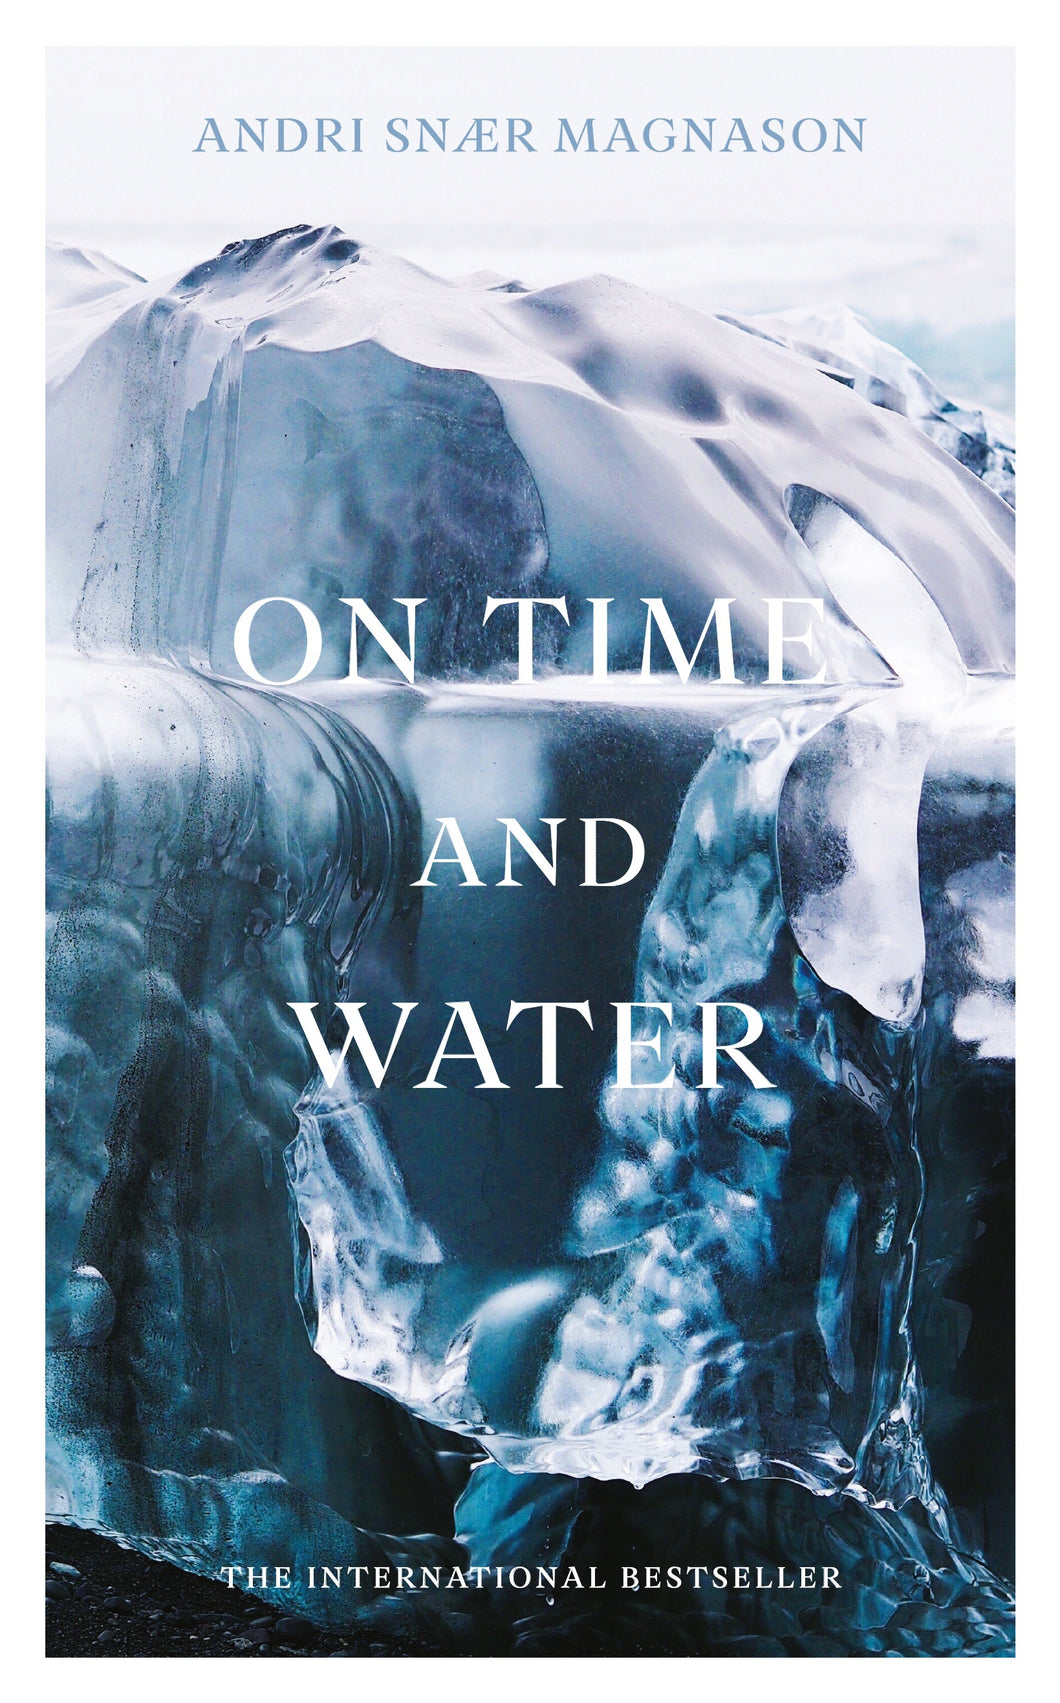 On Time and Water by Andri Snær Magnason